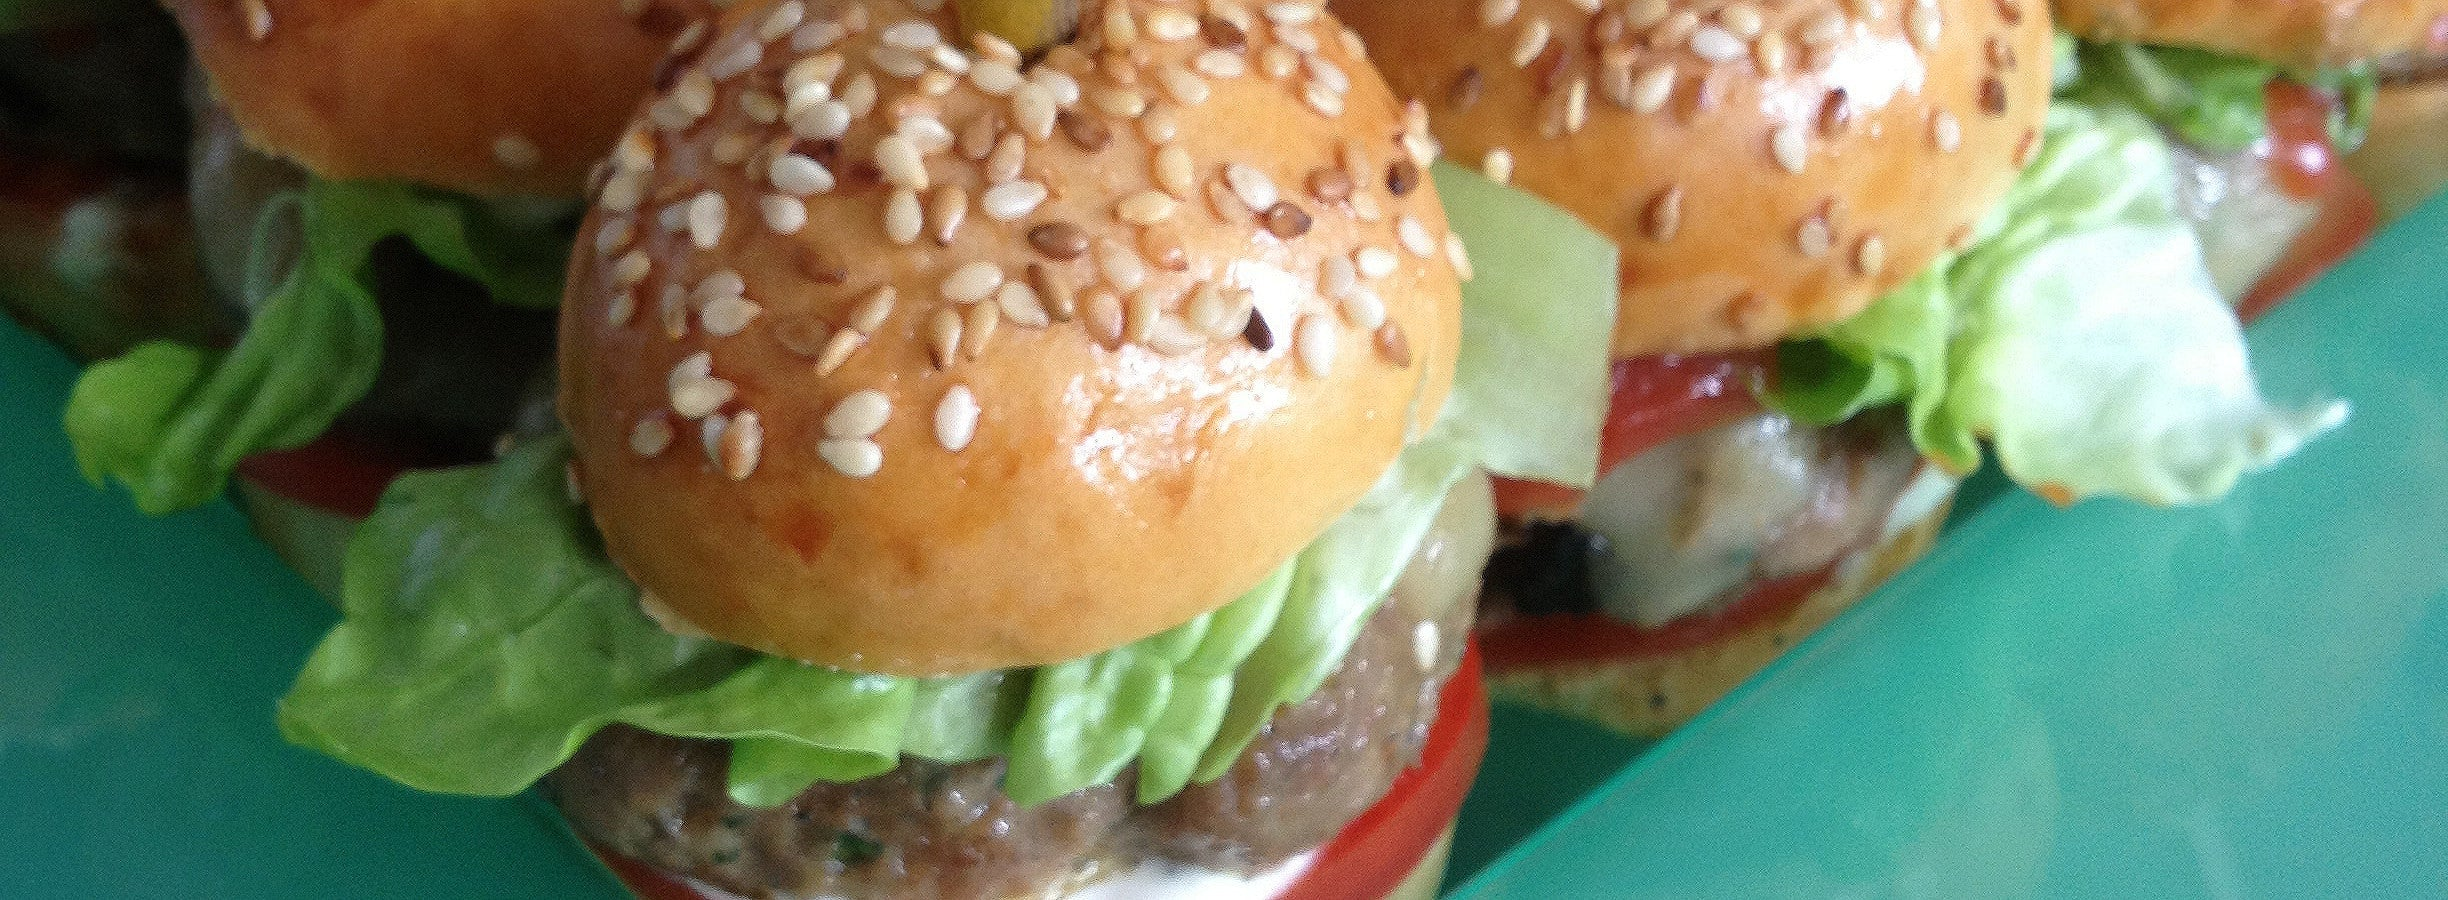 order online mini burgers delivered to your party